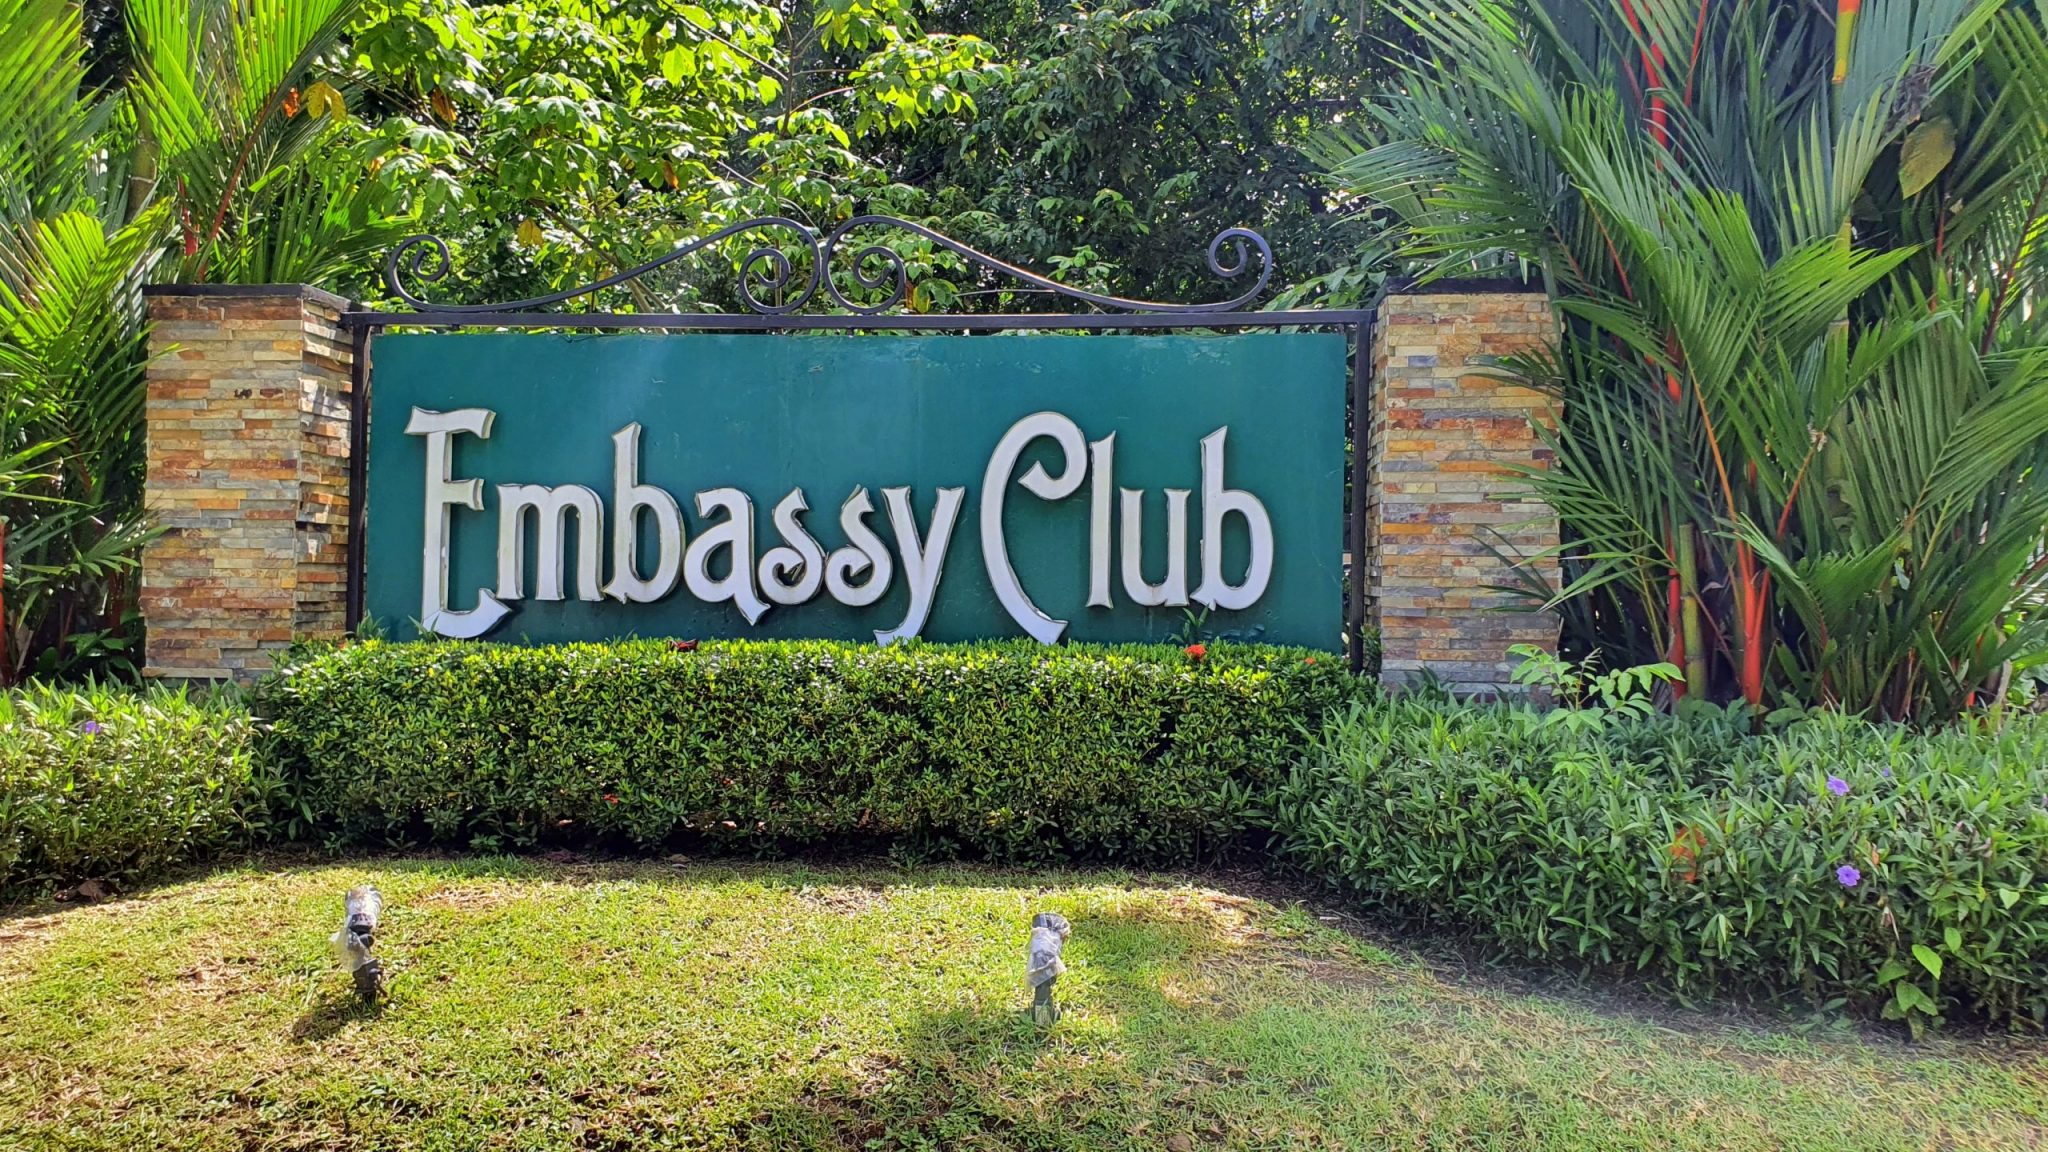 Embassy Club Vistas y Lugares (1)